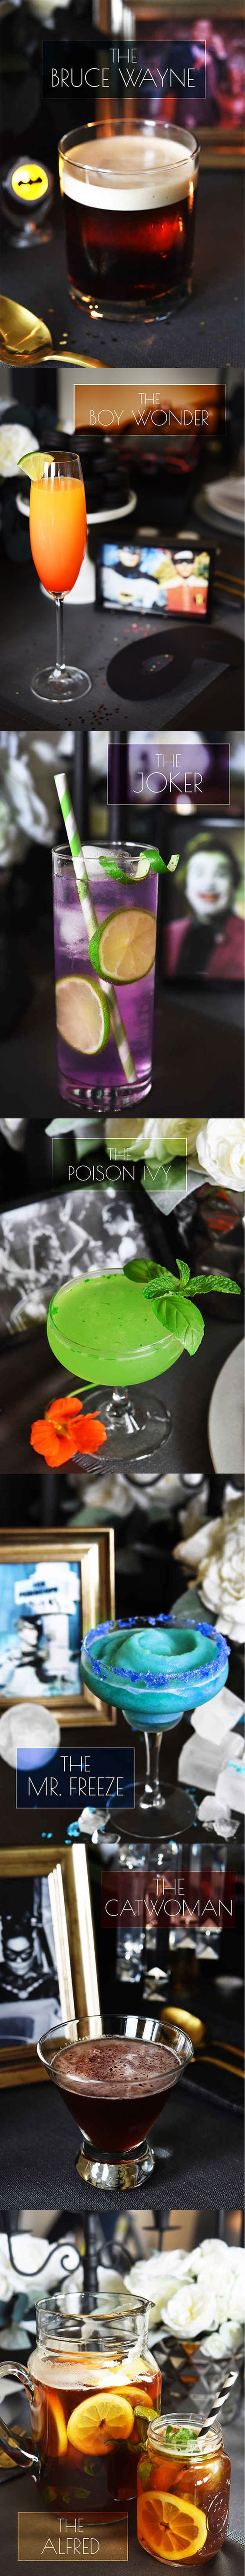 7 Batman themed cocktails & drinks for your adult superhero party! Yum